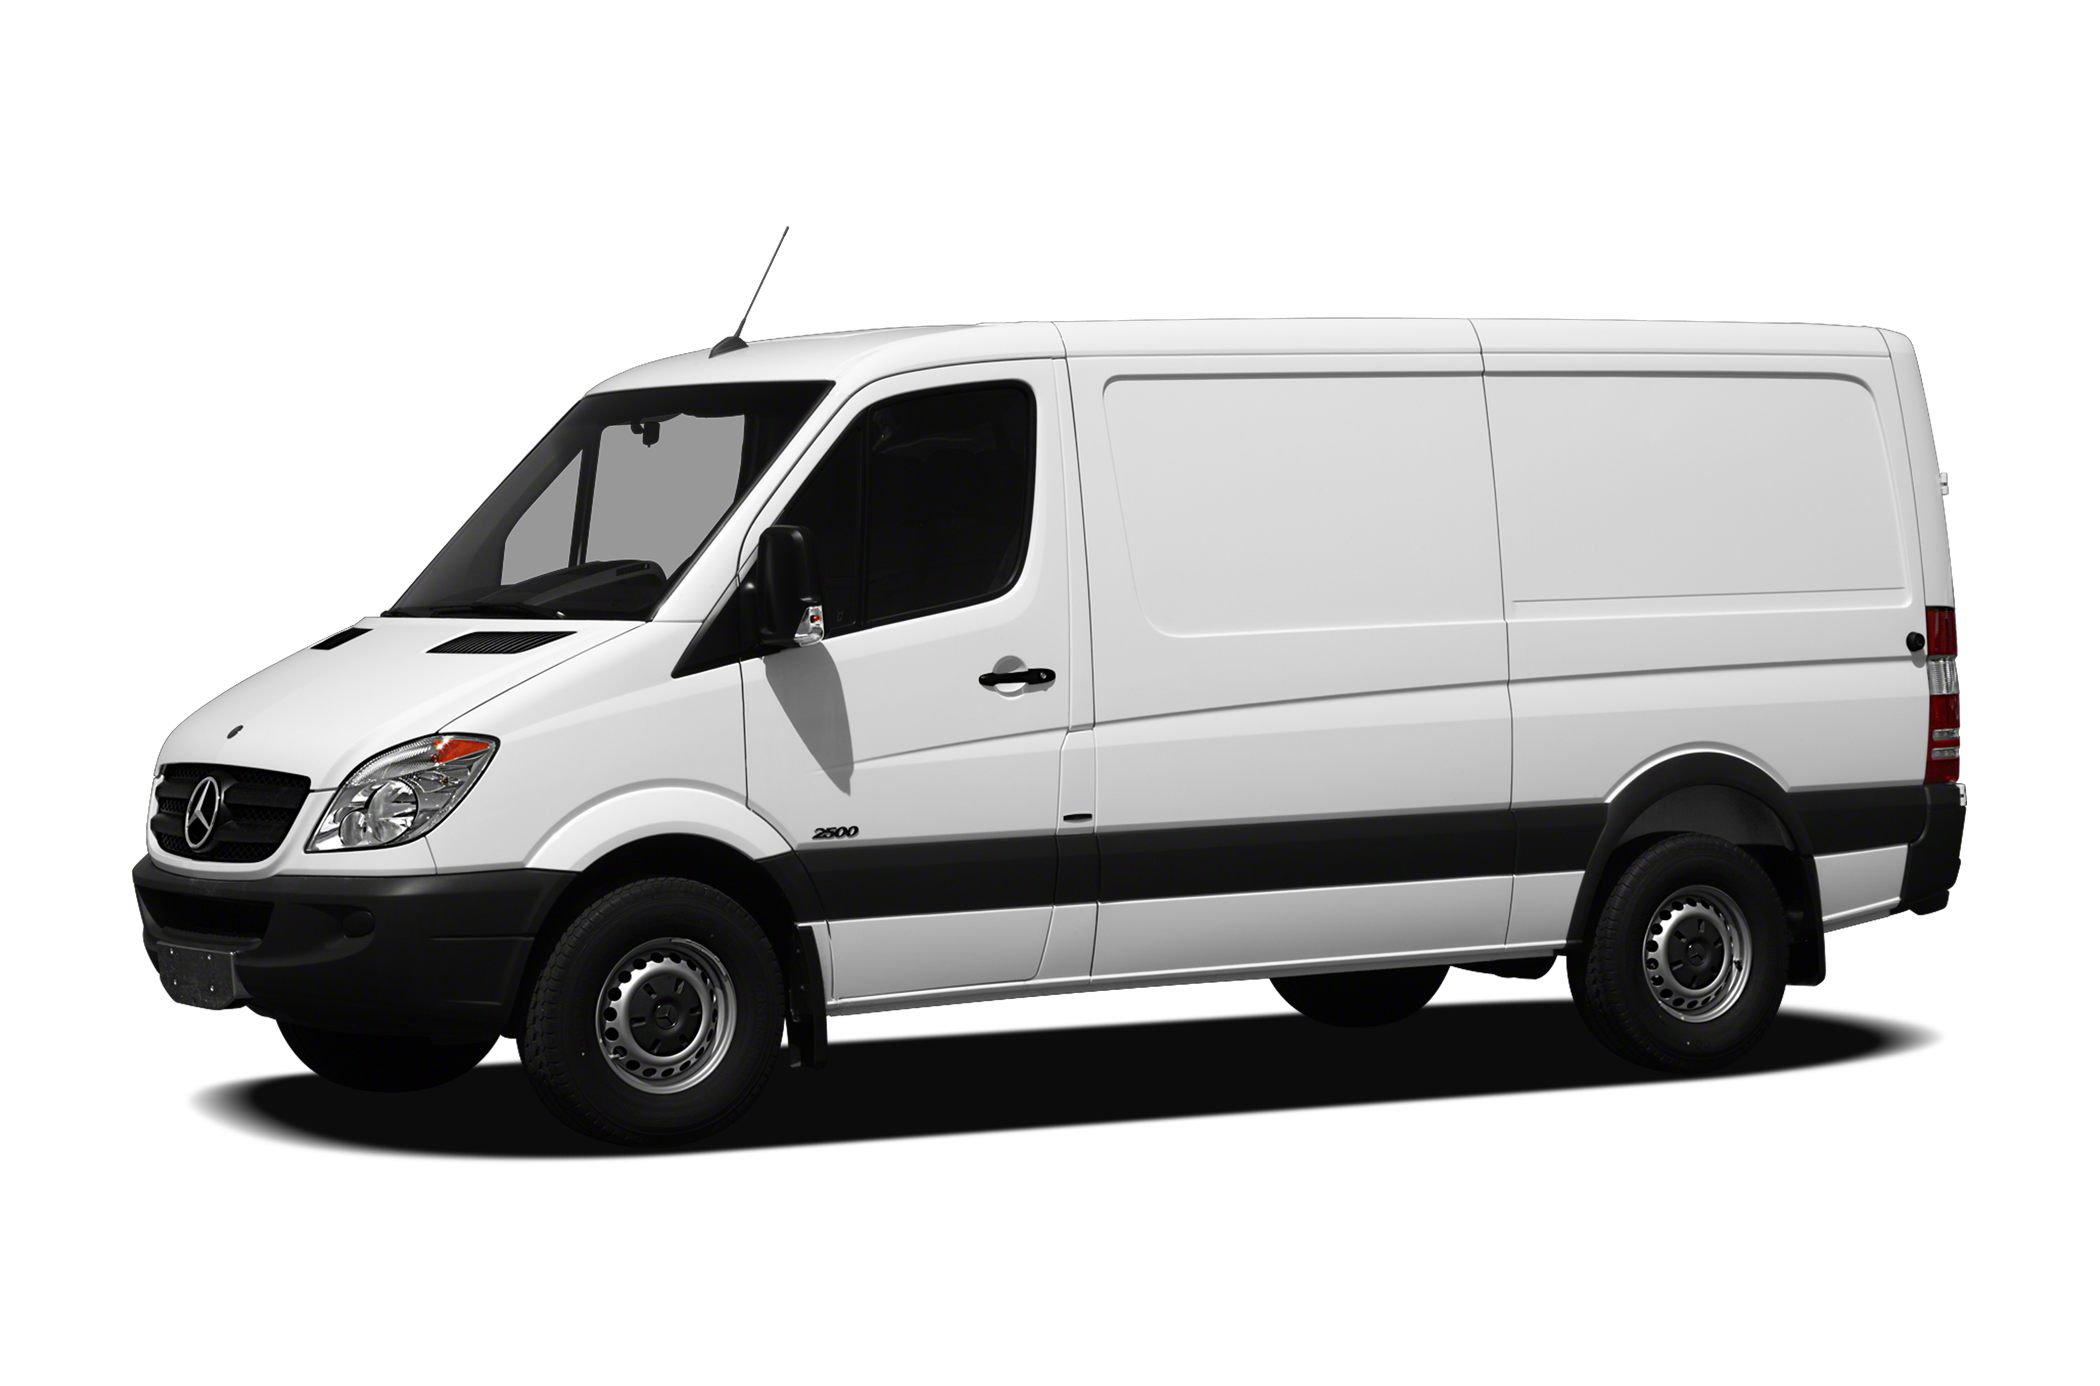 mercedes benz sprinter van pricing reviews and new model information autoblog. Black Bedroom Furniture Sets. Home Design Ideas